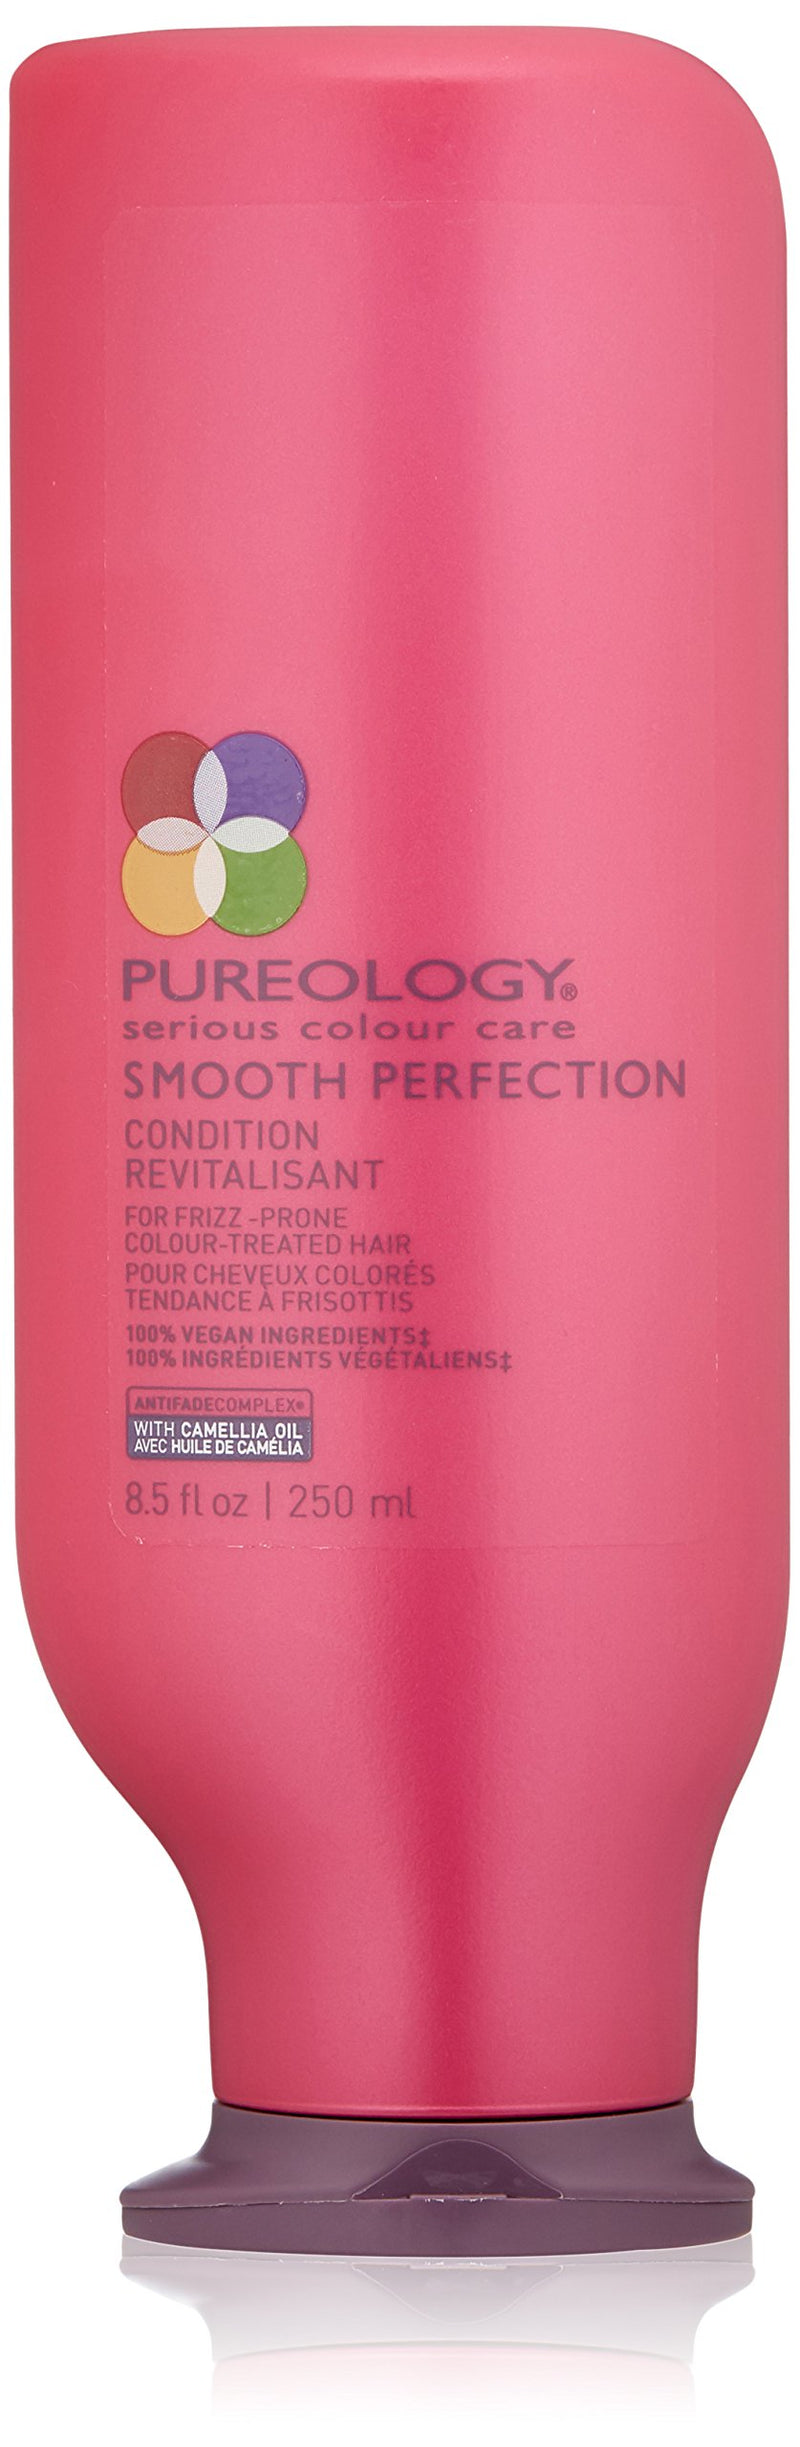 Pureology Smooth Perfection Condition 8.5 fl Oz